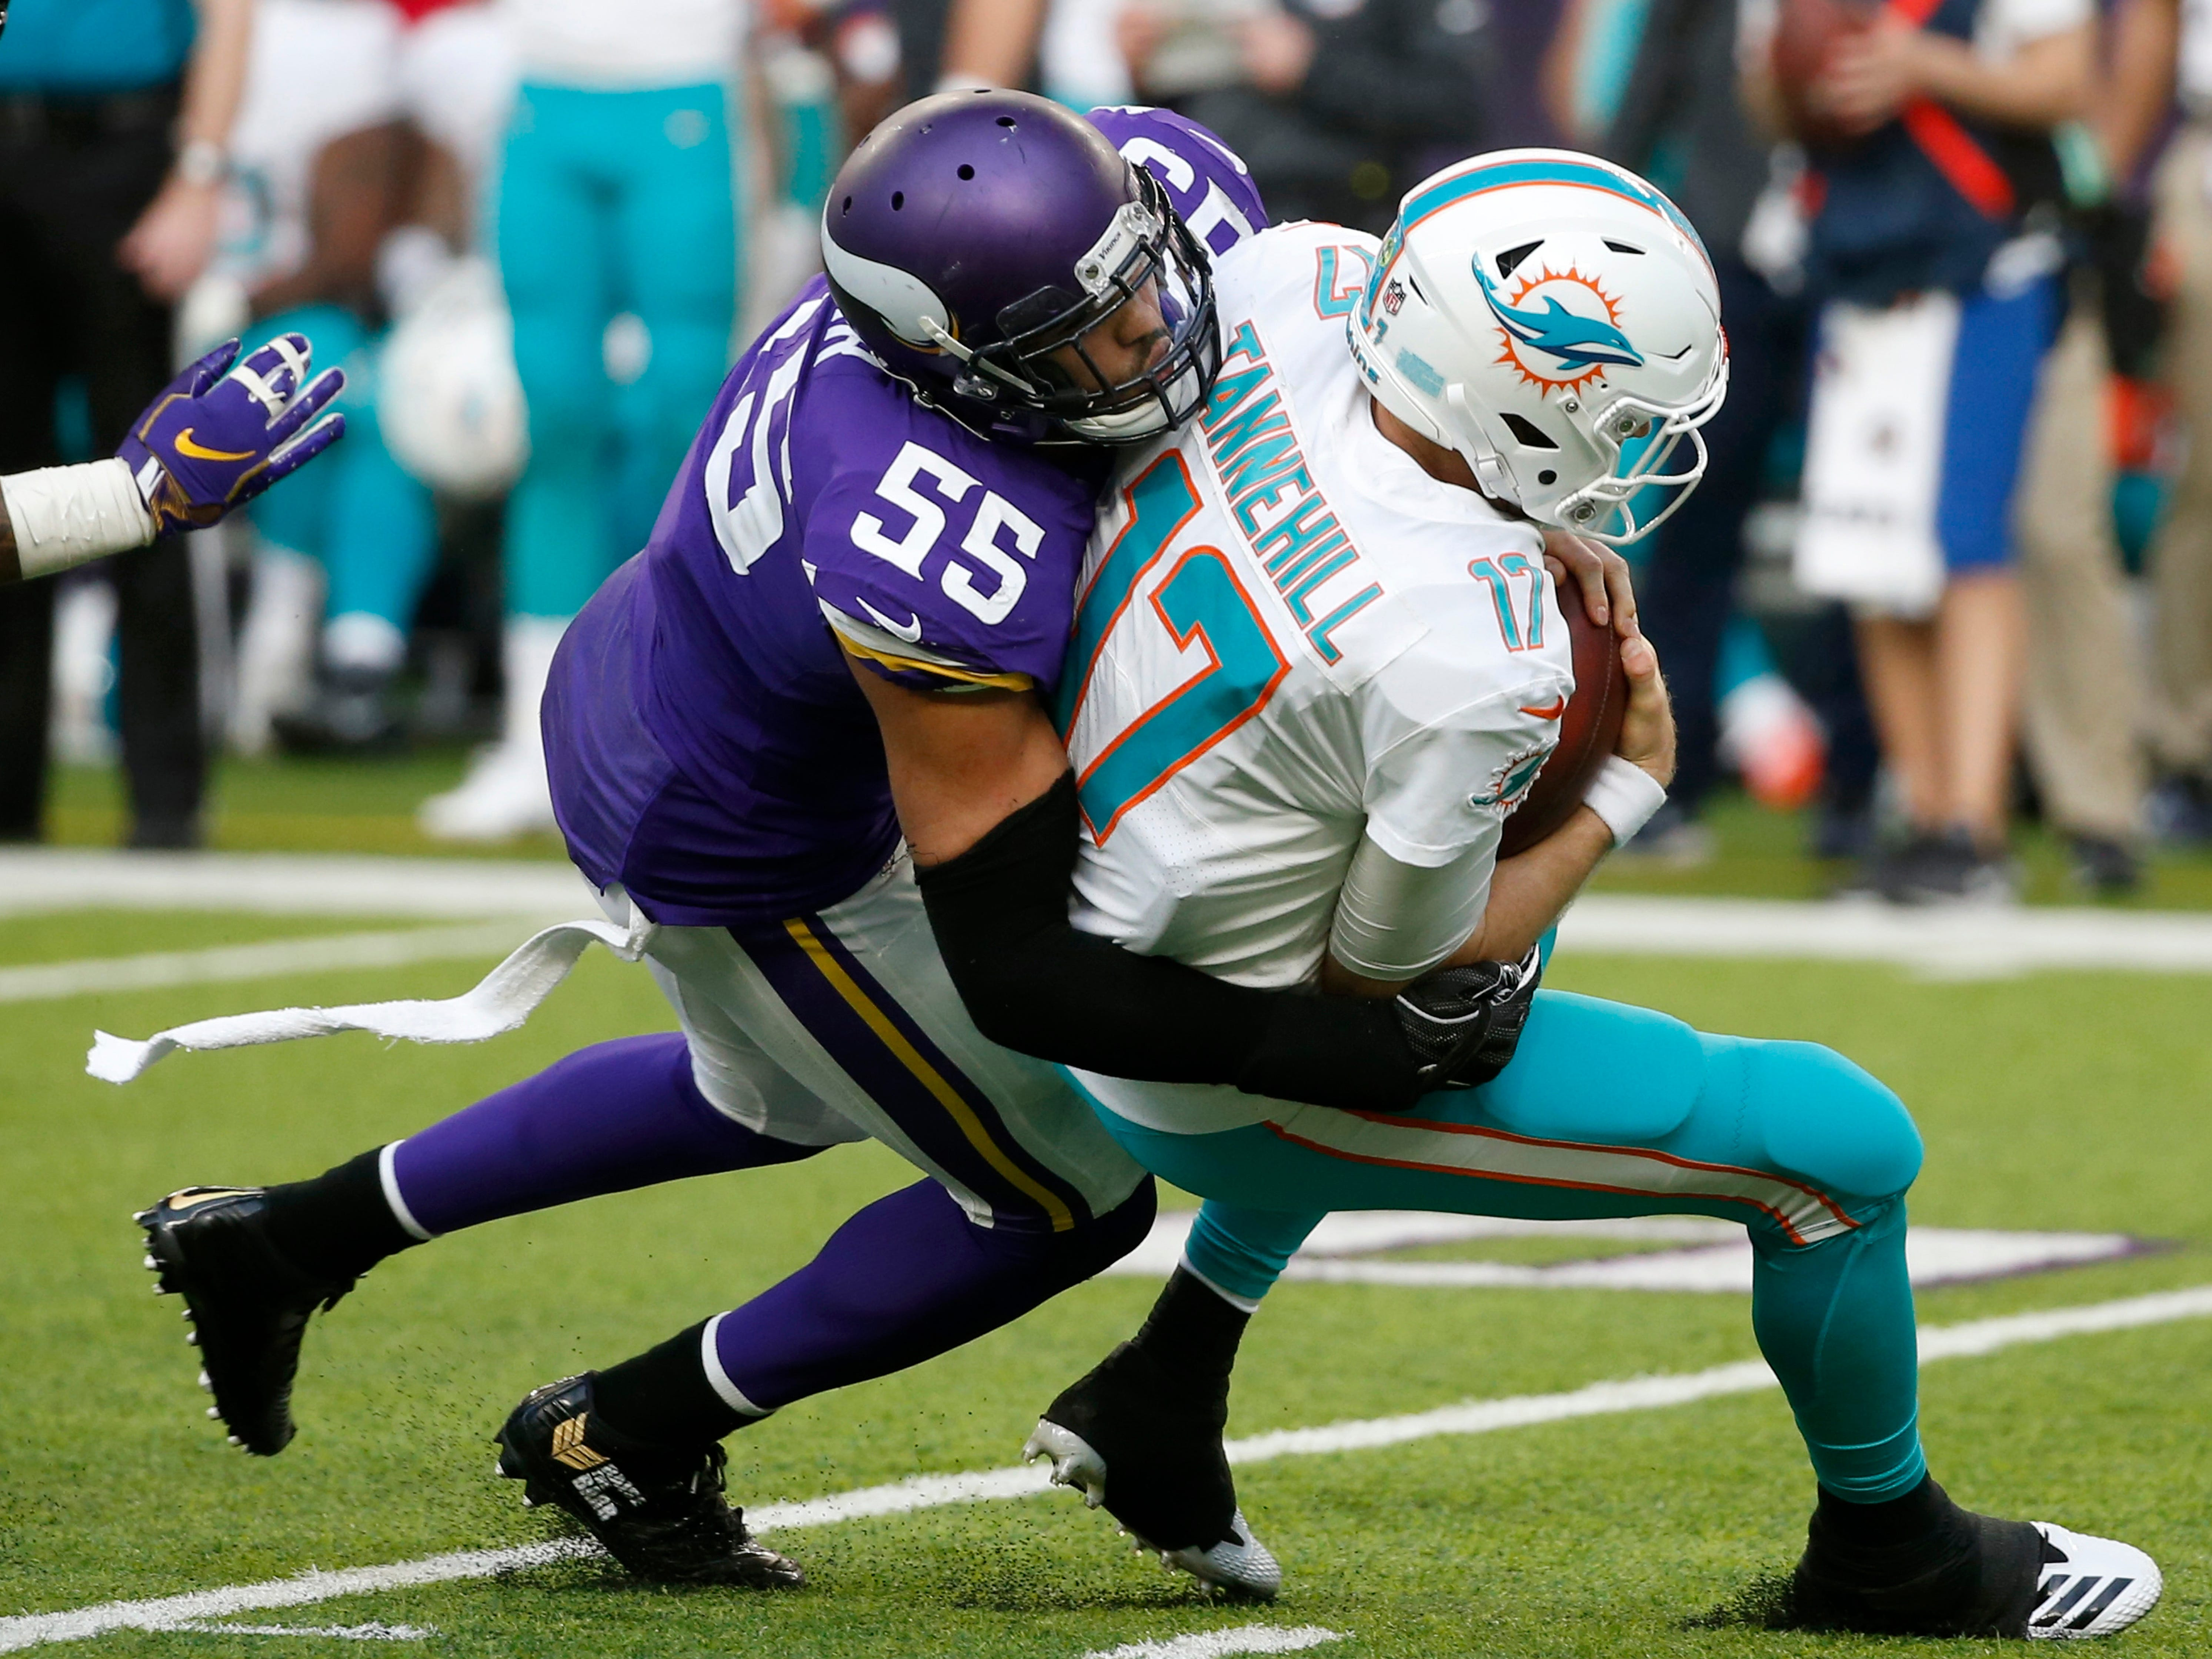 Anthony Barr, OLB, Minnesota: A key cog in the Vikings defense the past several years, Barr's production has never quite lived up to his status as a former top-10 draft pick. He's never hit the quarterback 10 times in a season, never had more than 4.0 sacks or 75 tackles and doesn't force many turnovers. Still, he's an upgrade over Christian Jones, just not one worth breaking the bank to acquire.